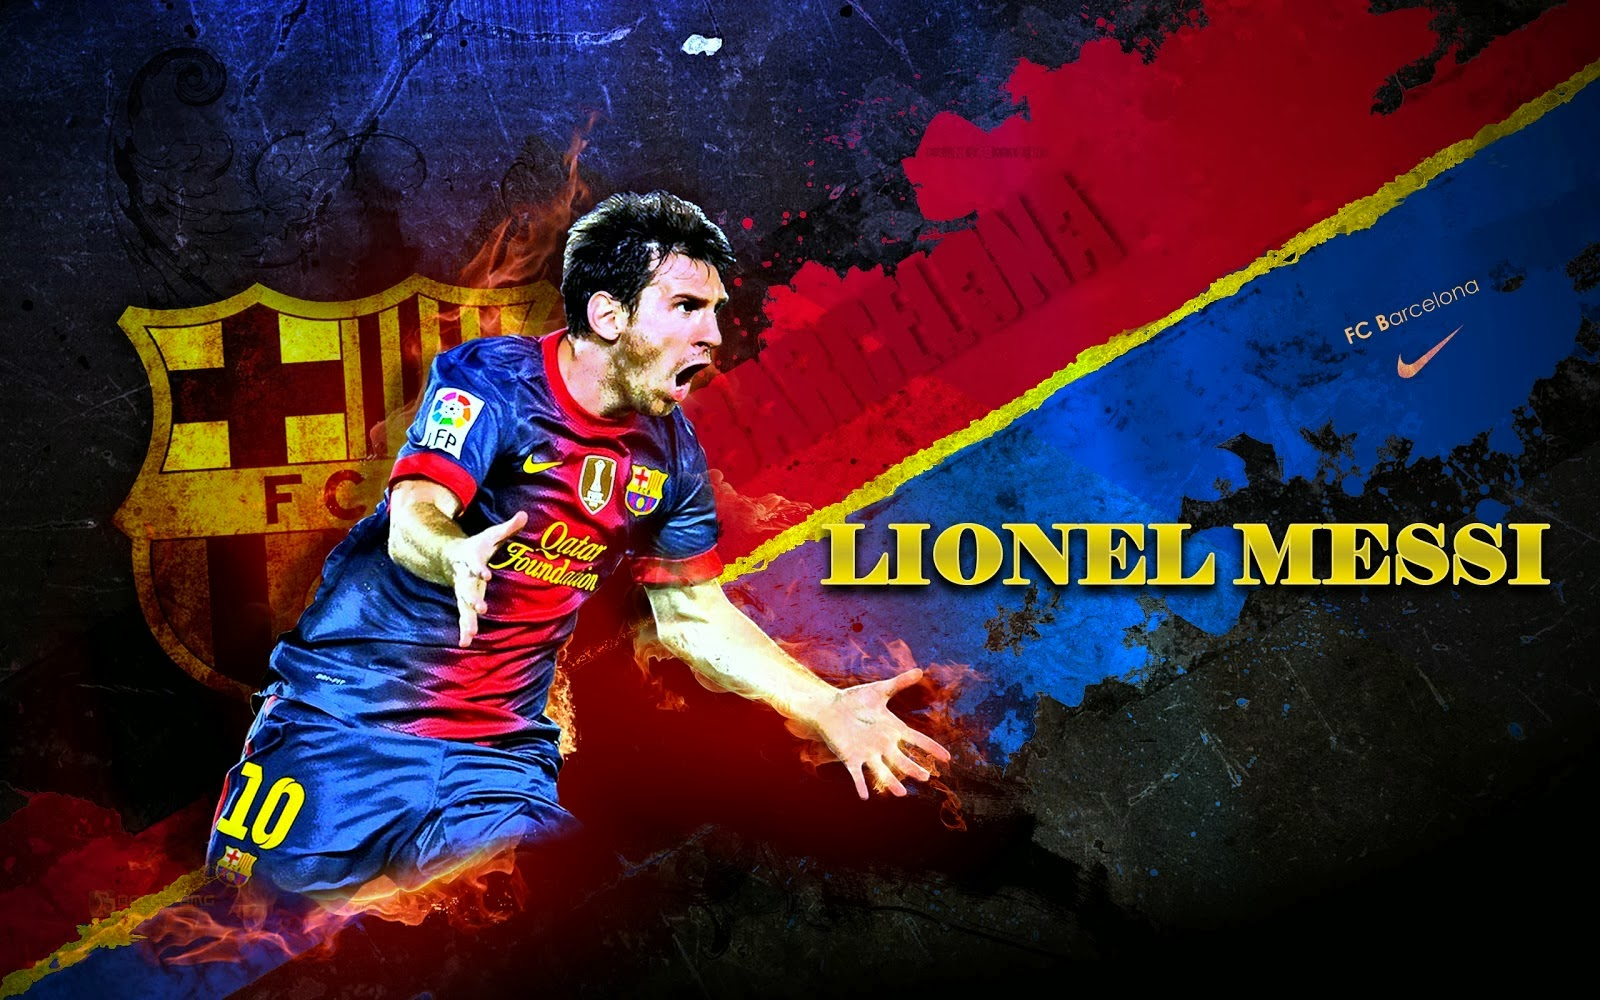 Lionel Messi 2014 HD Wallpapers Latest HD Wallpapers 1600x1000